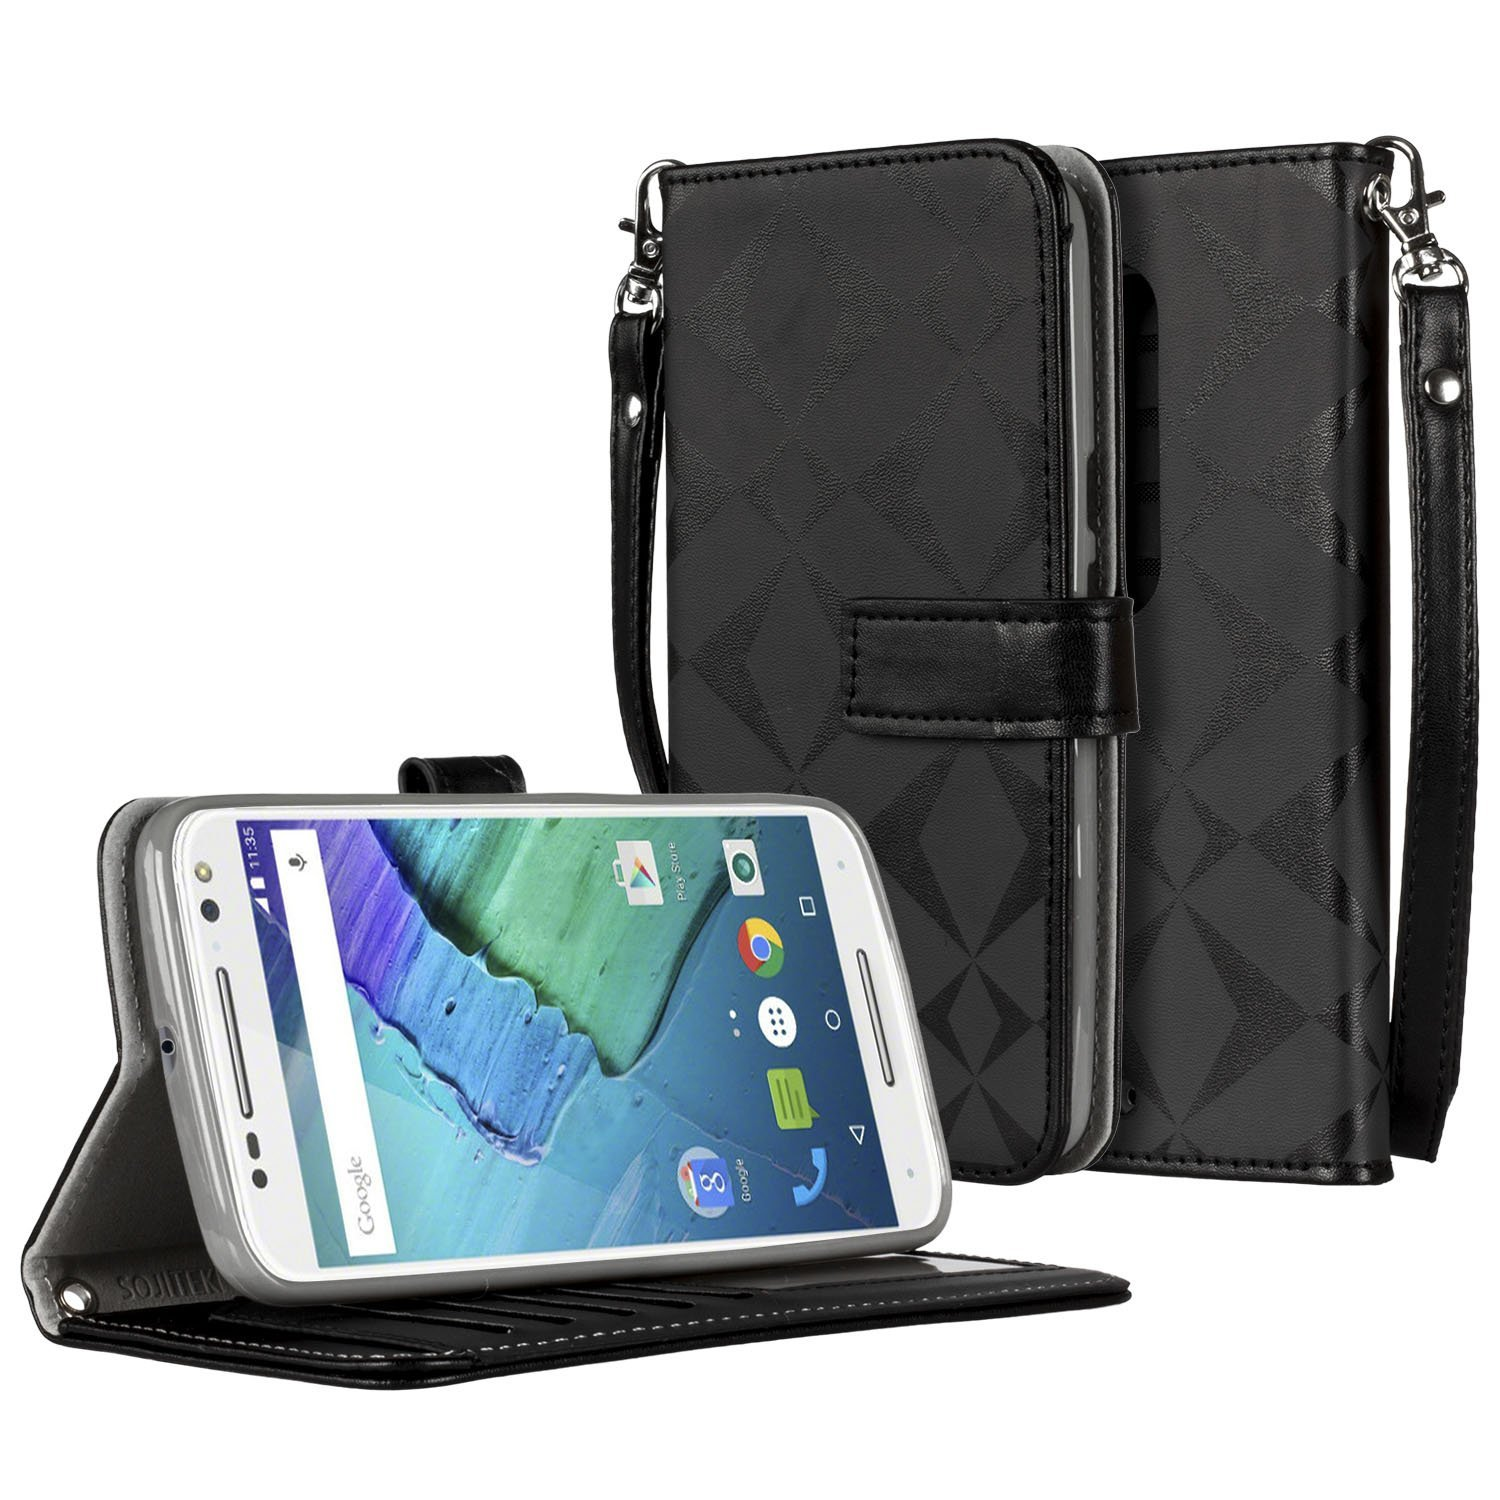 SOJITEK Motorola Moto X Style Premium Black Diamond on Black Series Color PU Leather Wallet Case with Stand / Removable Strap, Card & Money Pockets, ID Window Slots Pouches